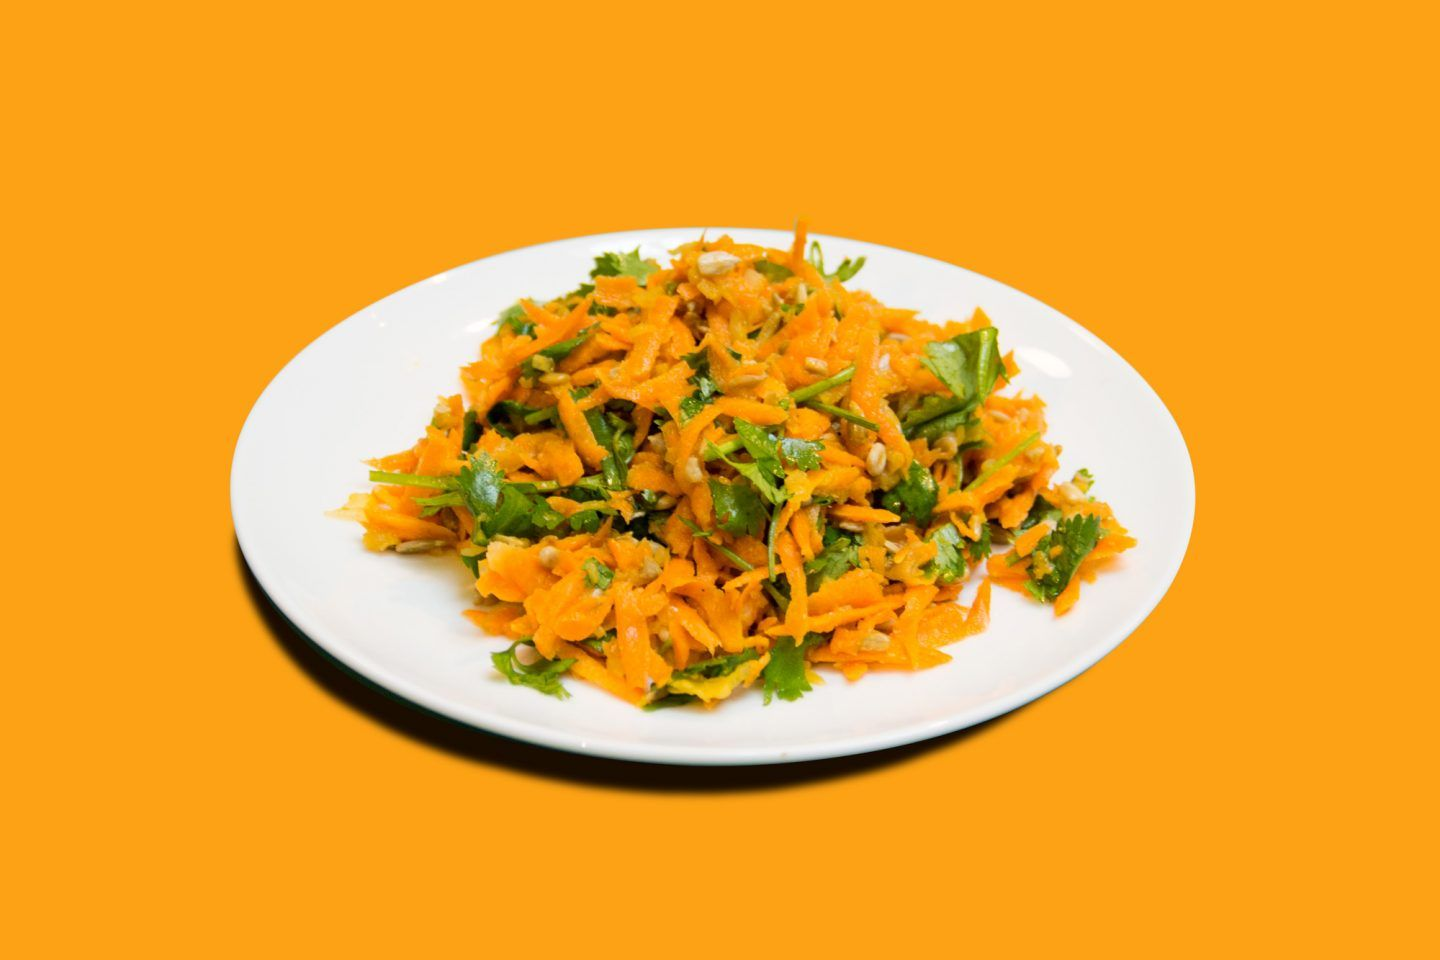 Grated carrots make a great salad.